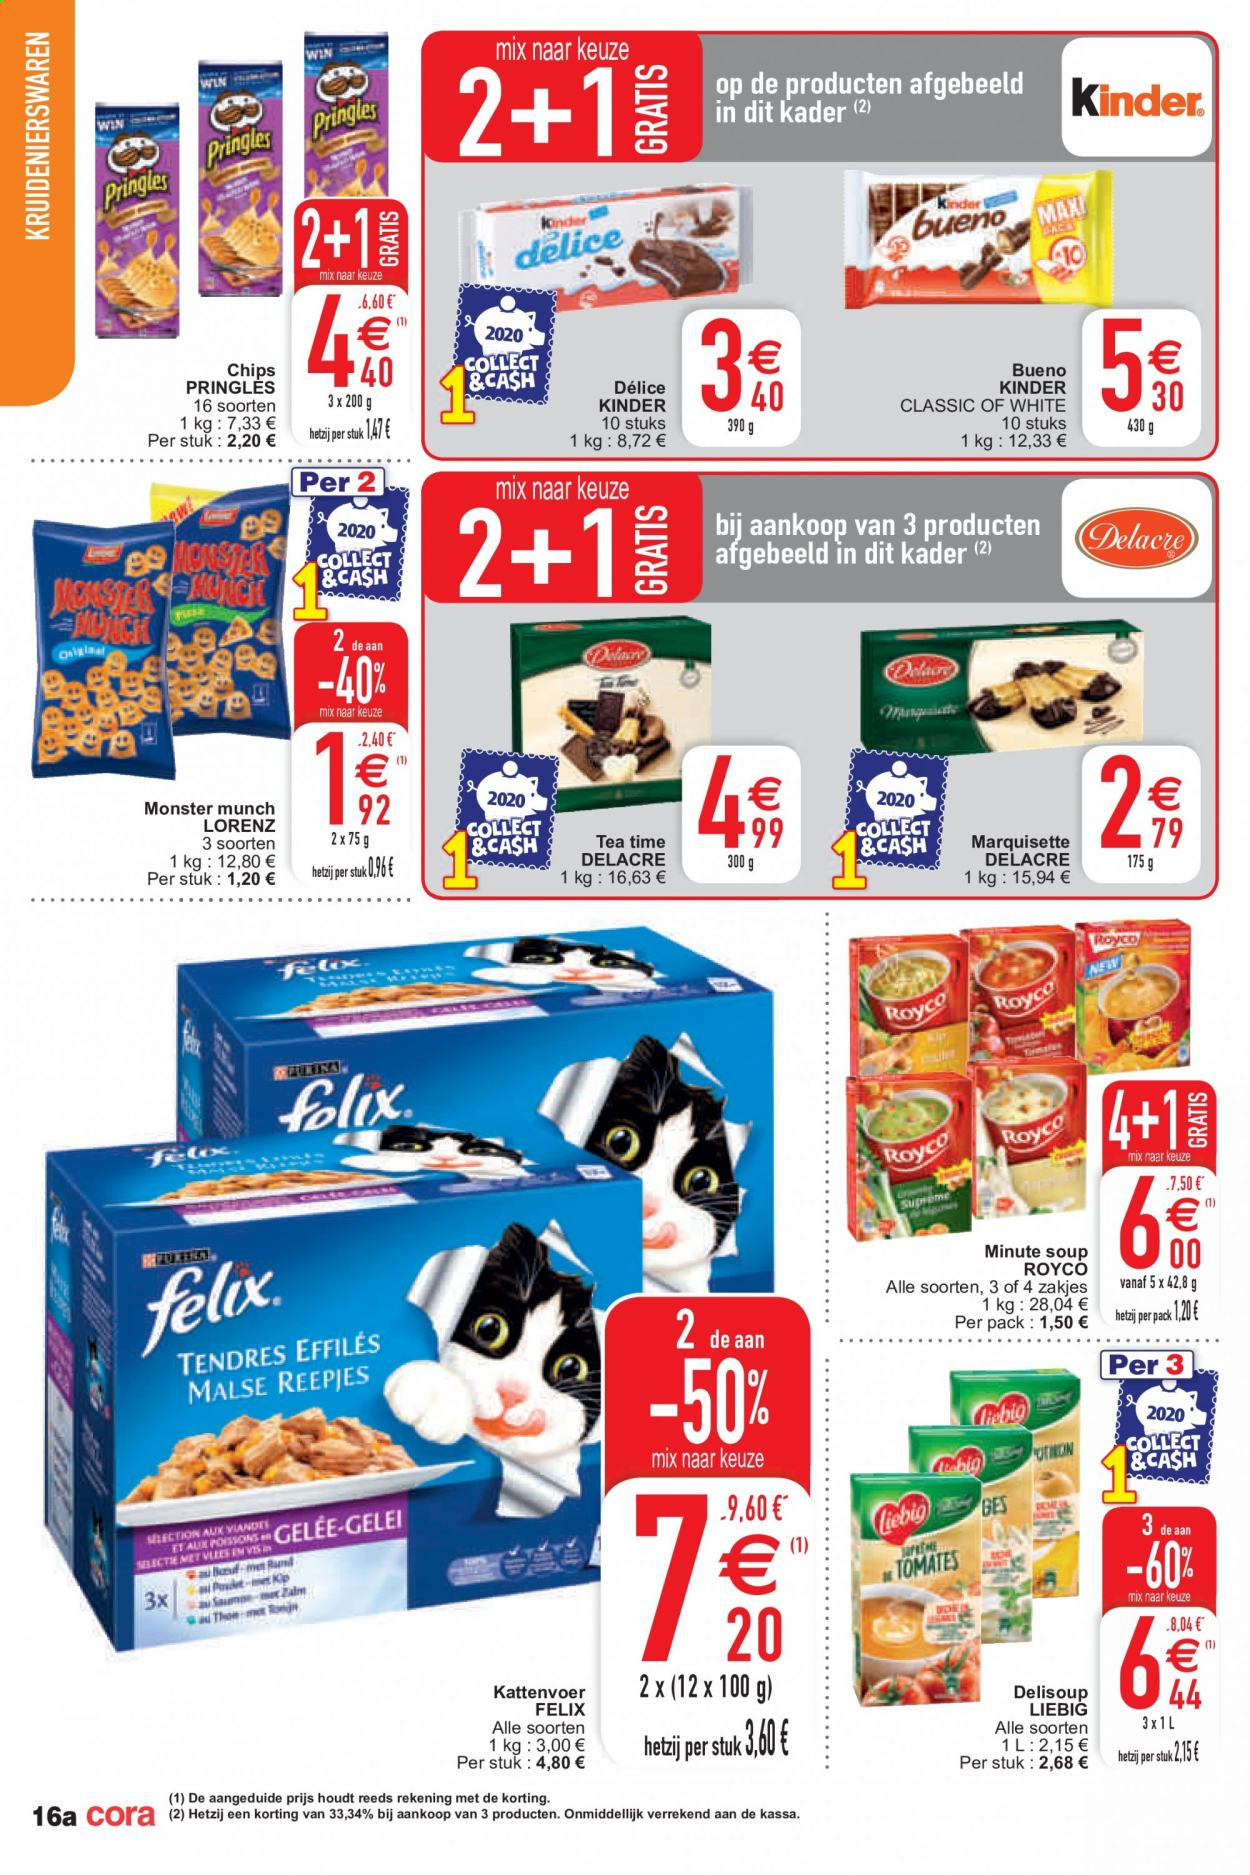 Catalogue Cora - 6.10.2020 - 12.10.2020 - Produits soldés - chips, kinder. Page 16.